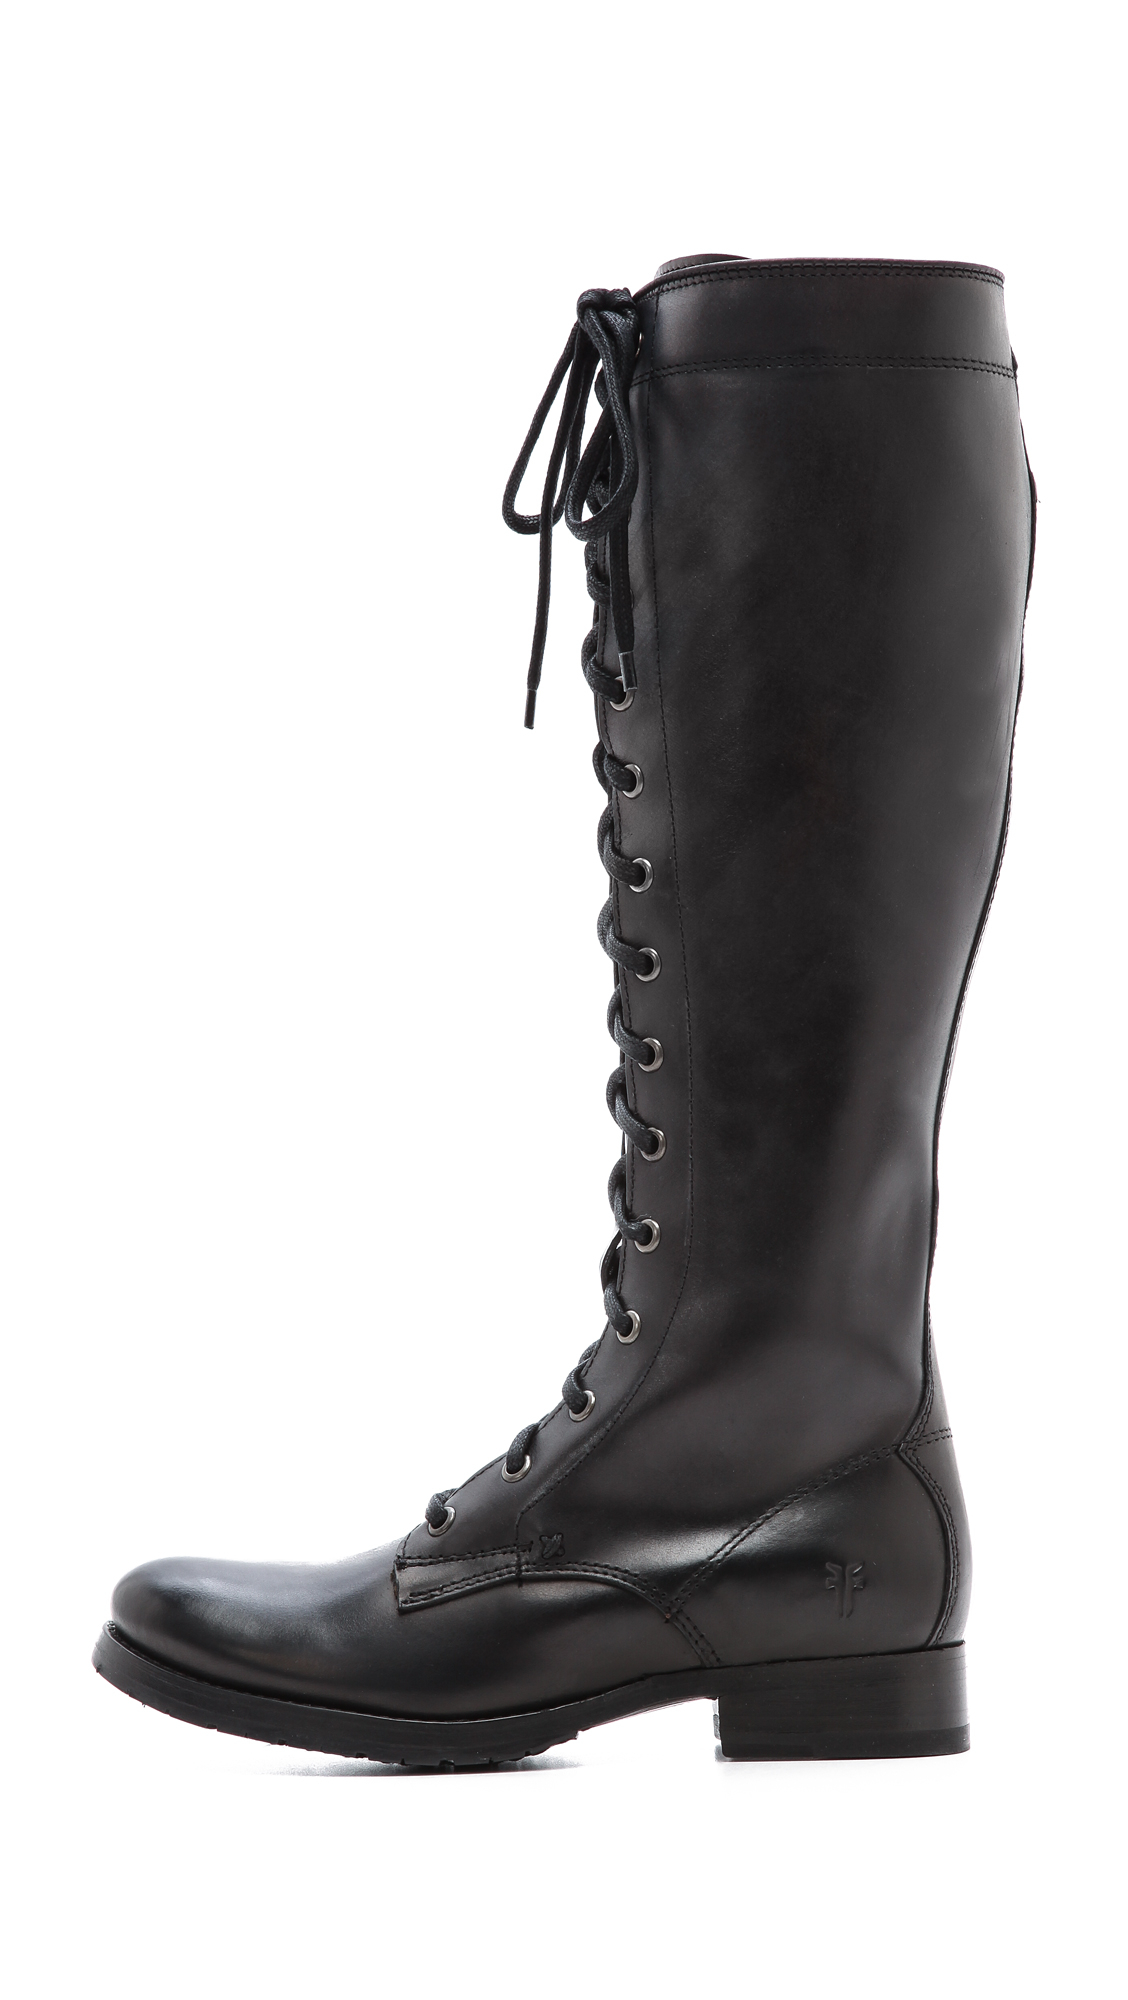 Frye Melissa Tall Lace Up Boots - Black